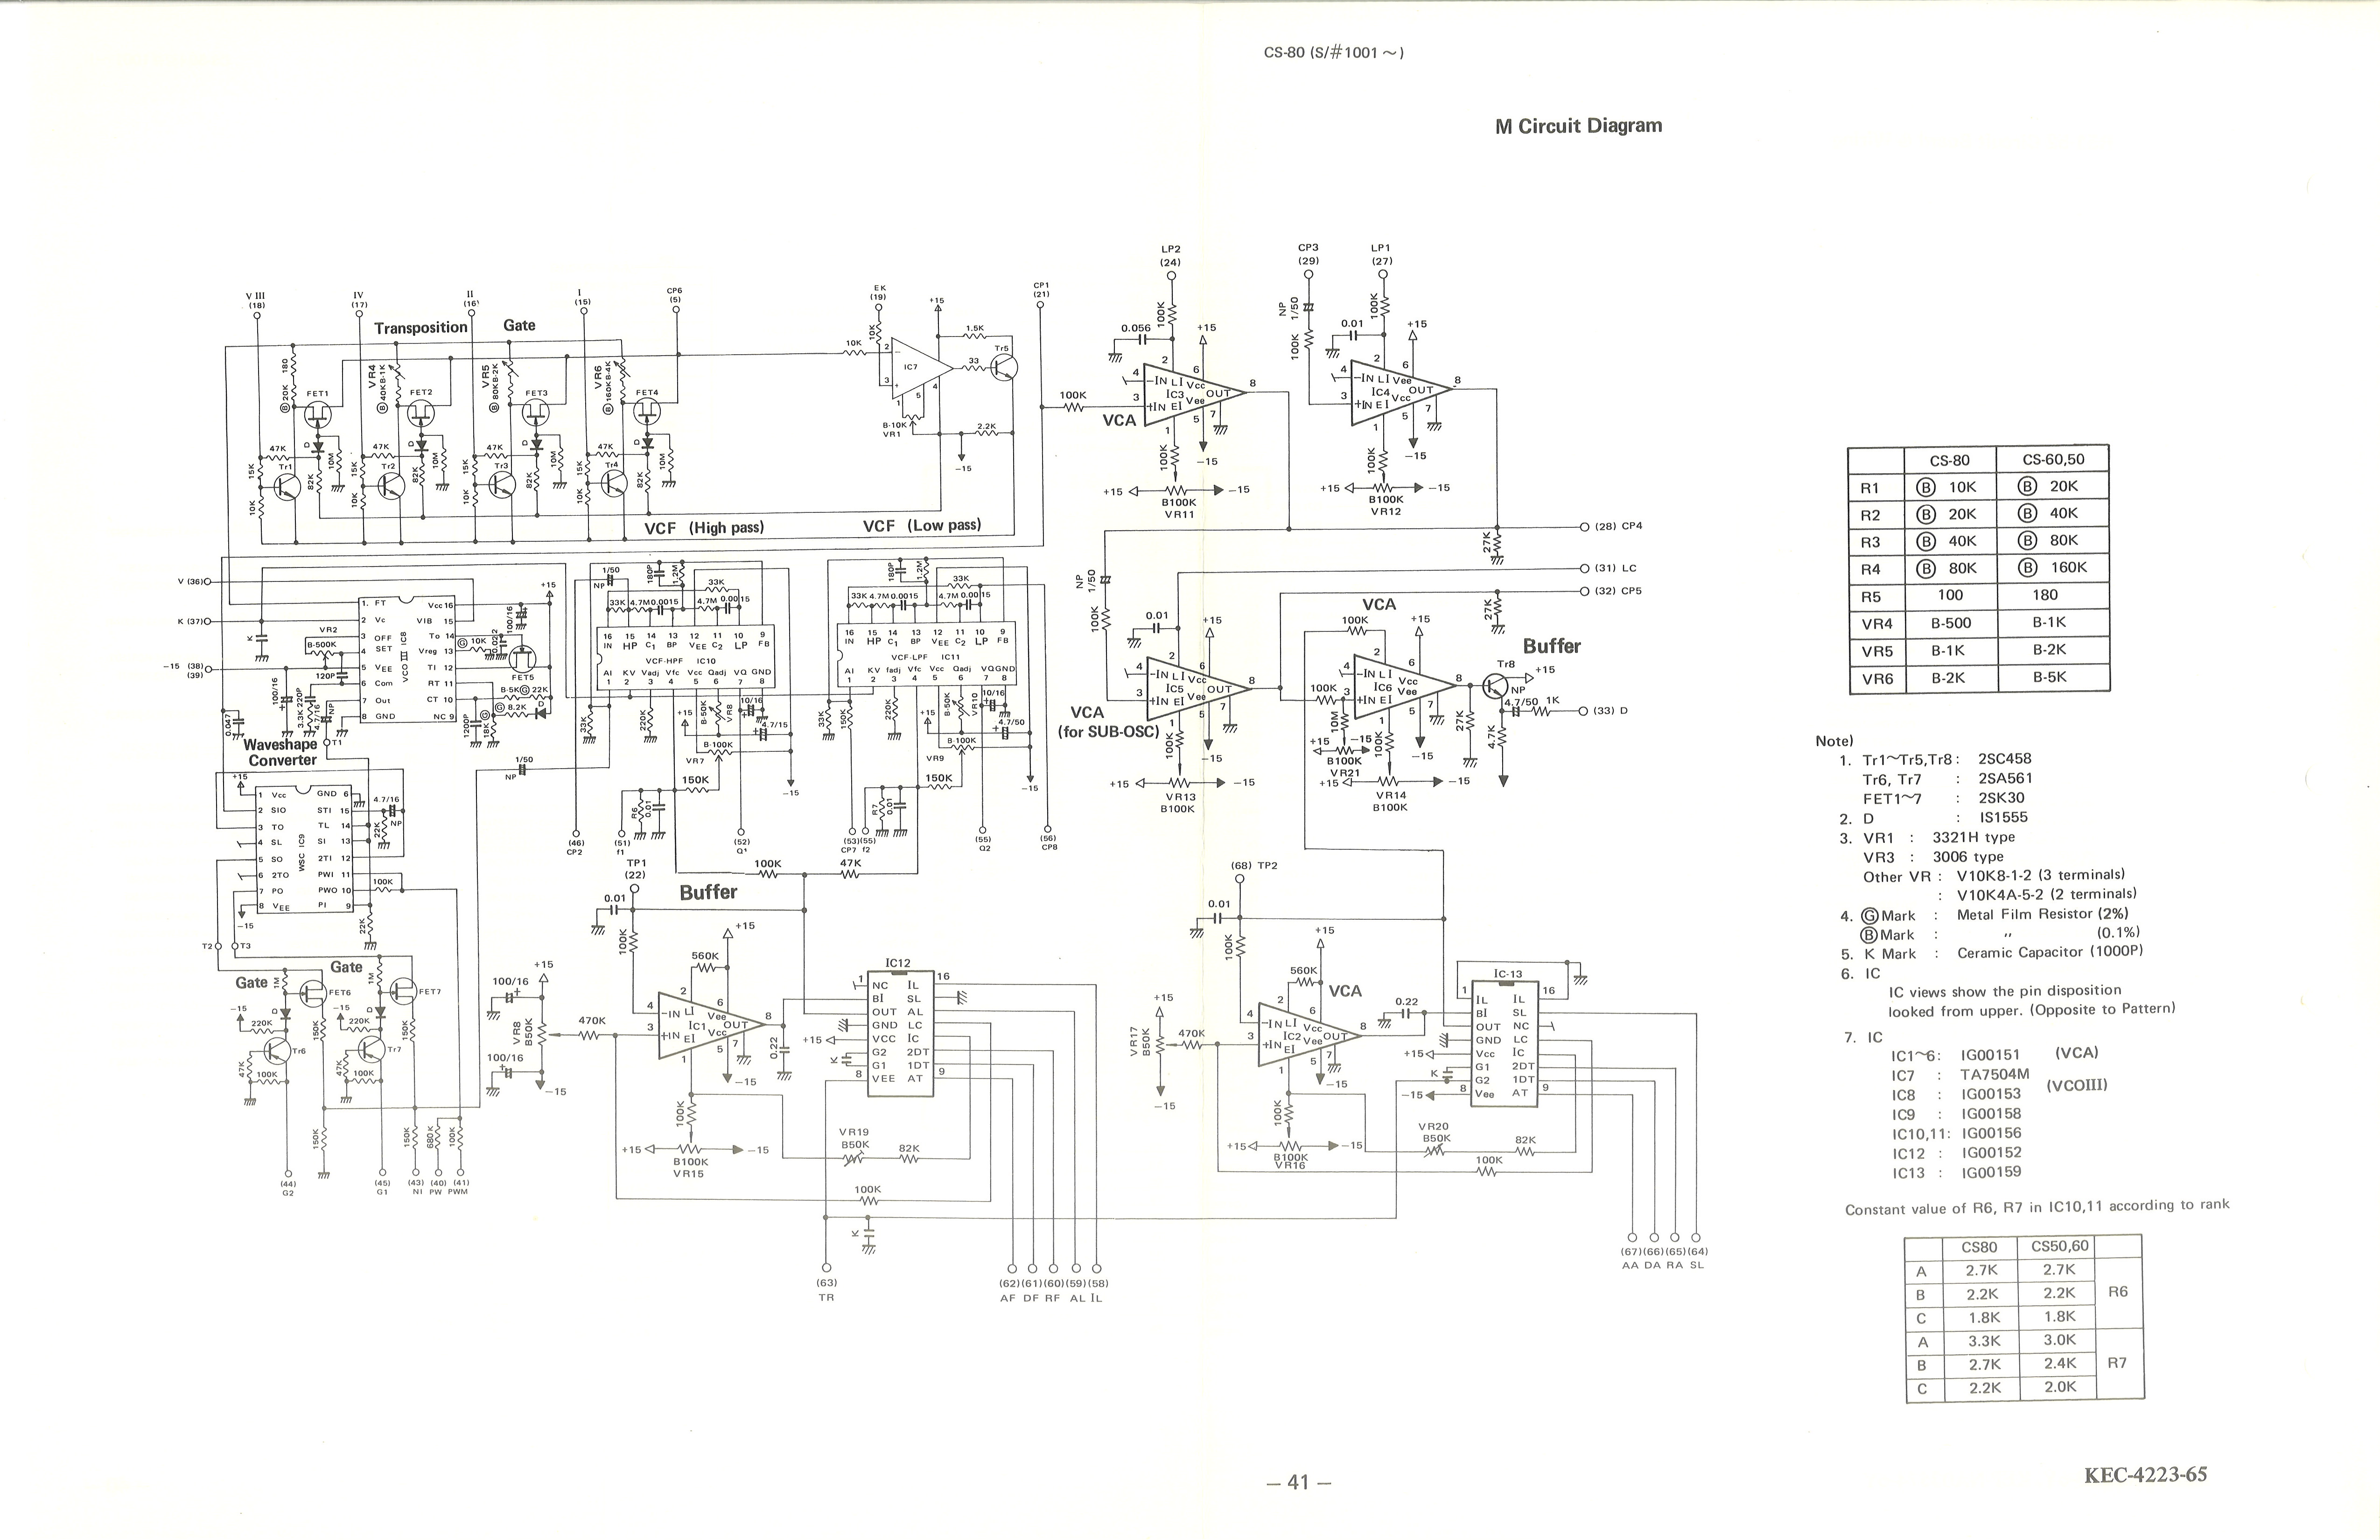 41 M Circuit Diagram yamaha cs 80 service manual yamaha schematic diagram at nearapp.co